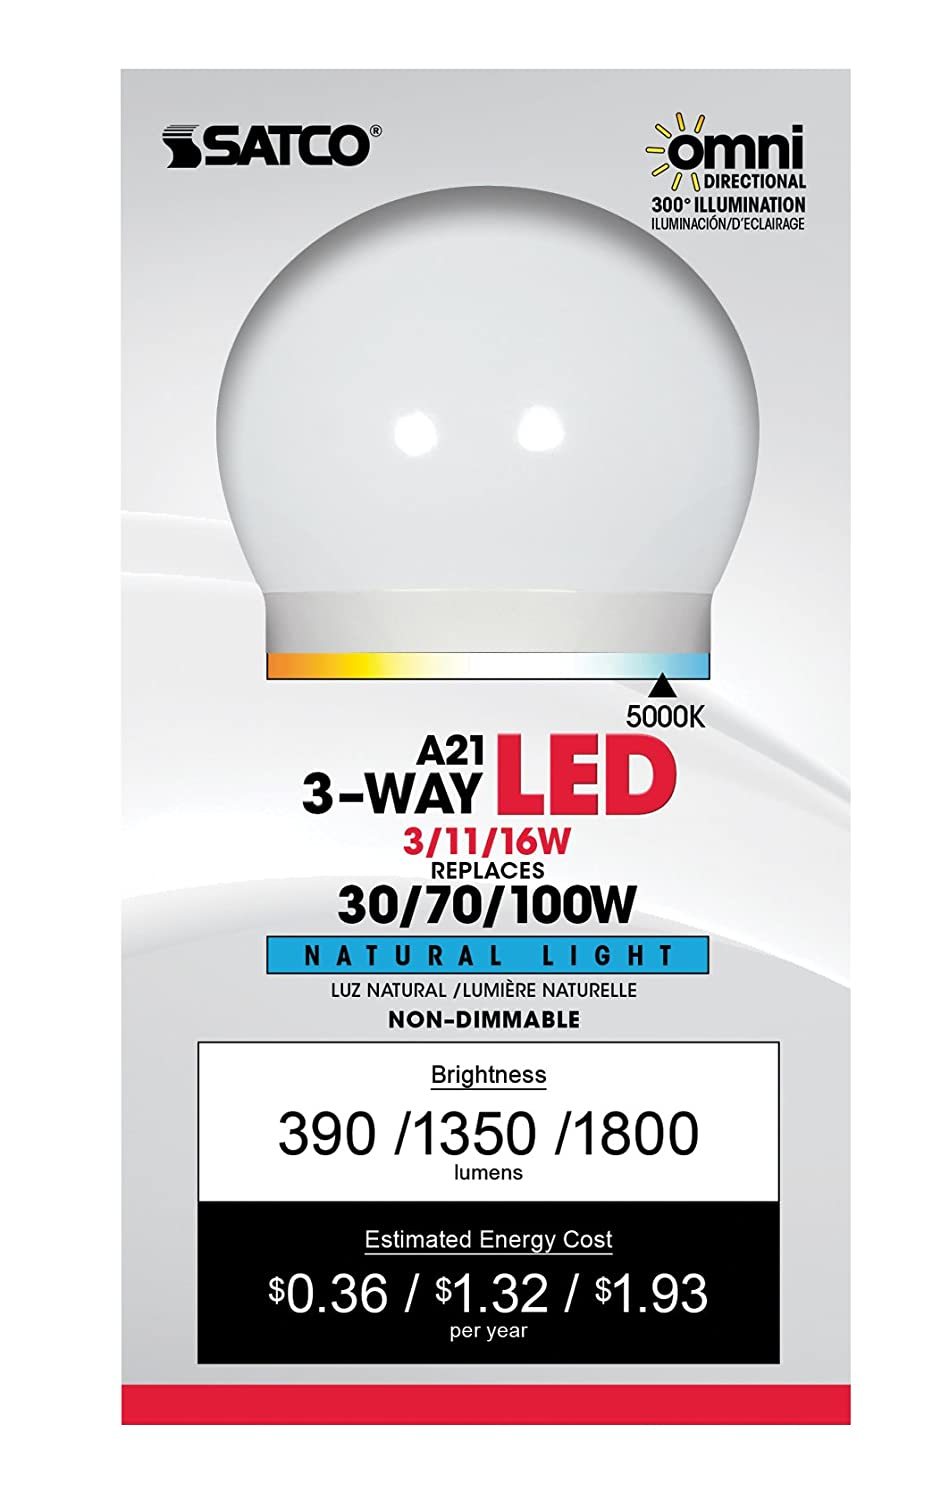 Satco S9373 A21 LED 3-Way Frosted 5000K Medium Double Contact Base Light Bulb with 300 Beam Spread, 3W/11W/16W - - Amazon.com